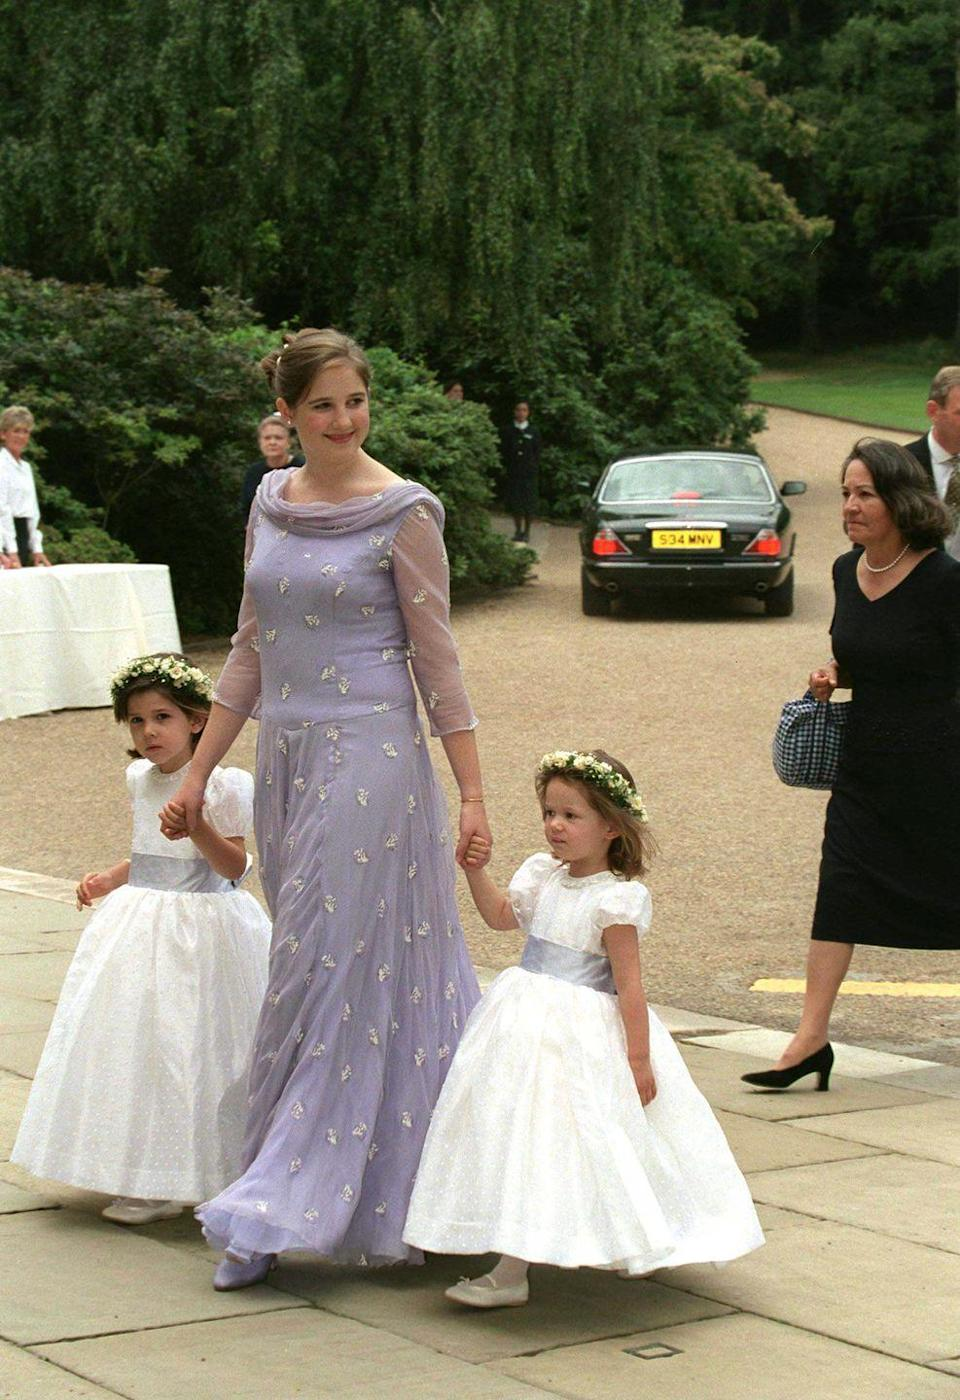 <p>Lavender replaced pink as one of the most popular colors for bridesmaid dresses in the '90s. Princess Theodora of Greece wore it to an English wedding, as seen on this beaded chiffon gown.</p>